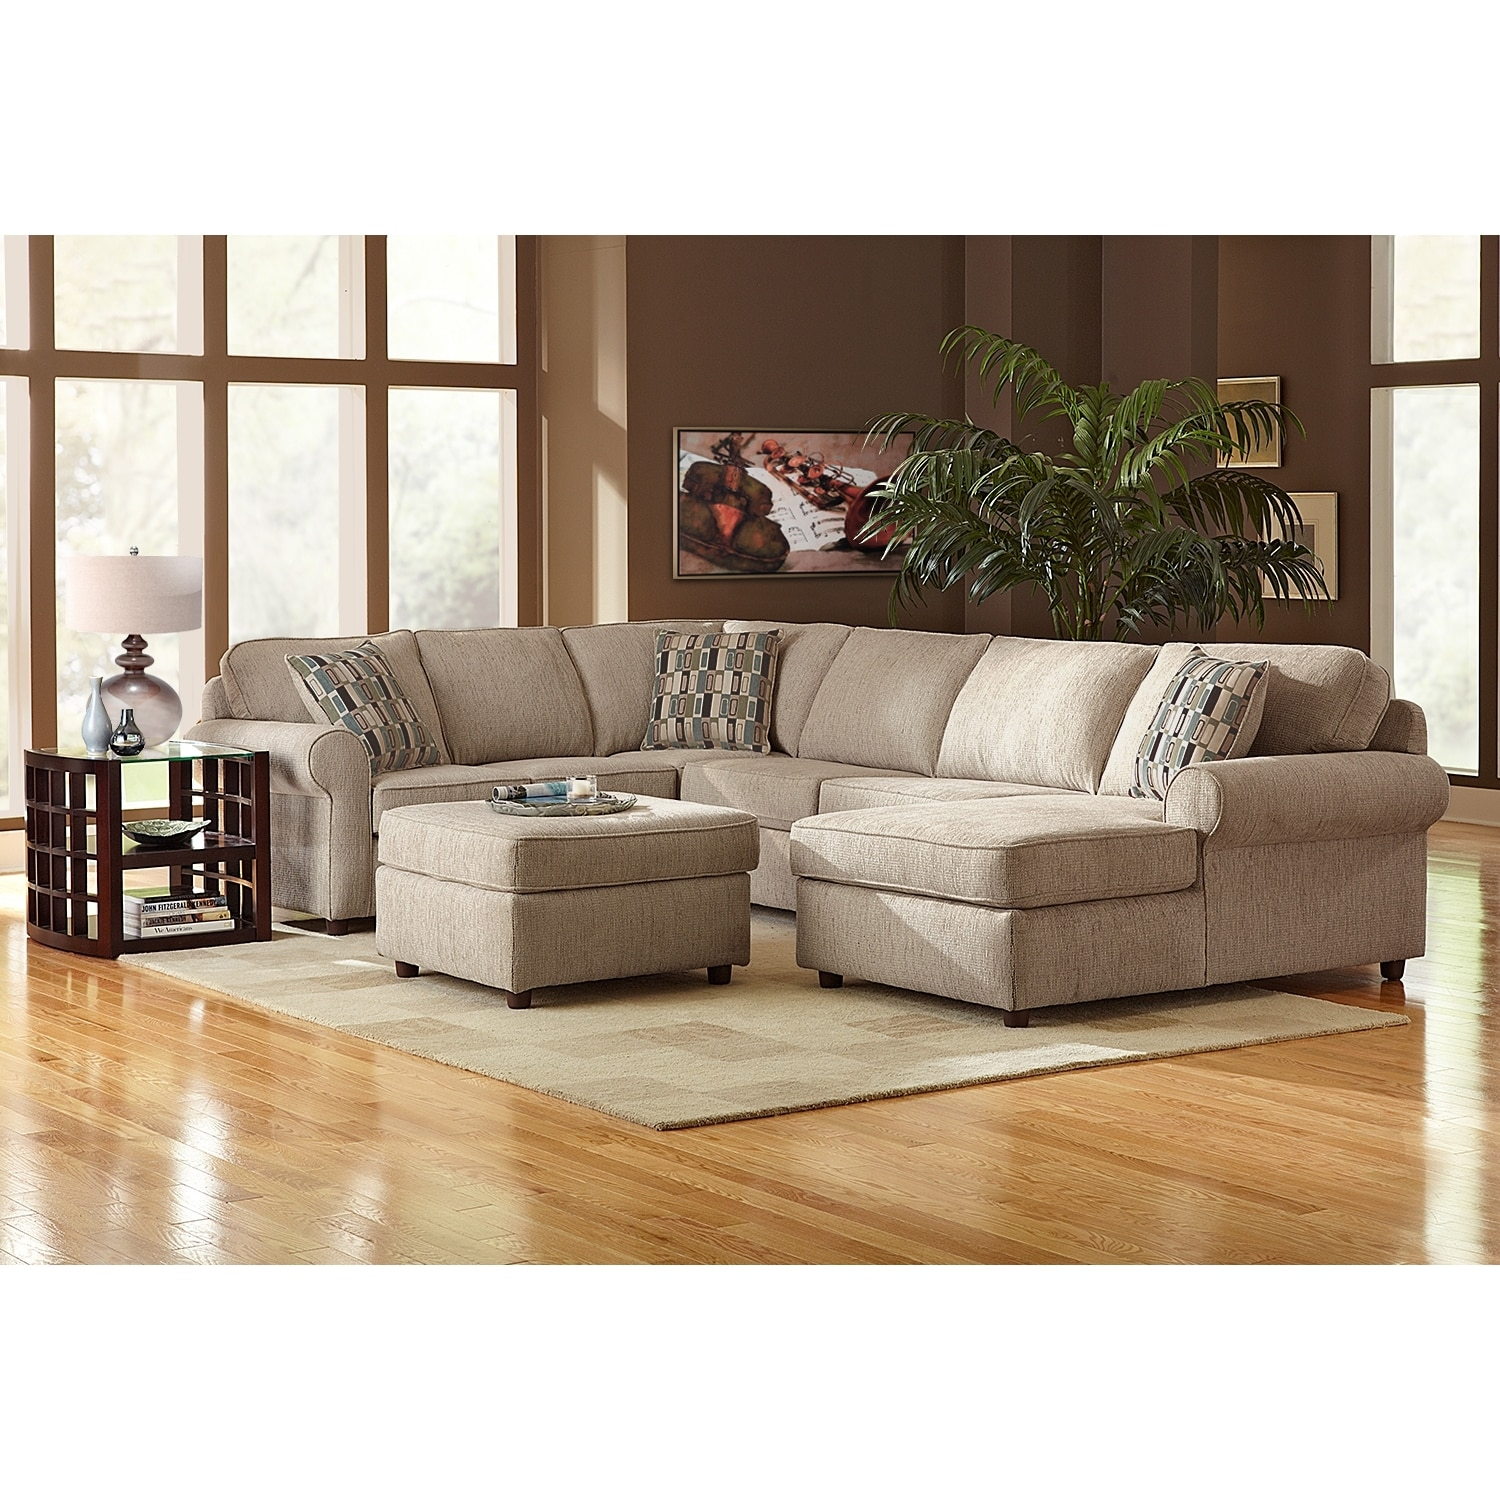 Monarch Ii Upholstery 3 Piece Sectional Value City Furniture